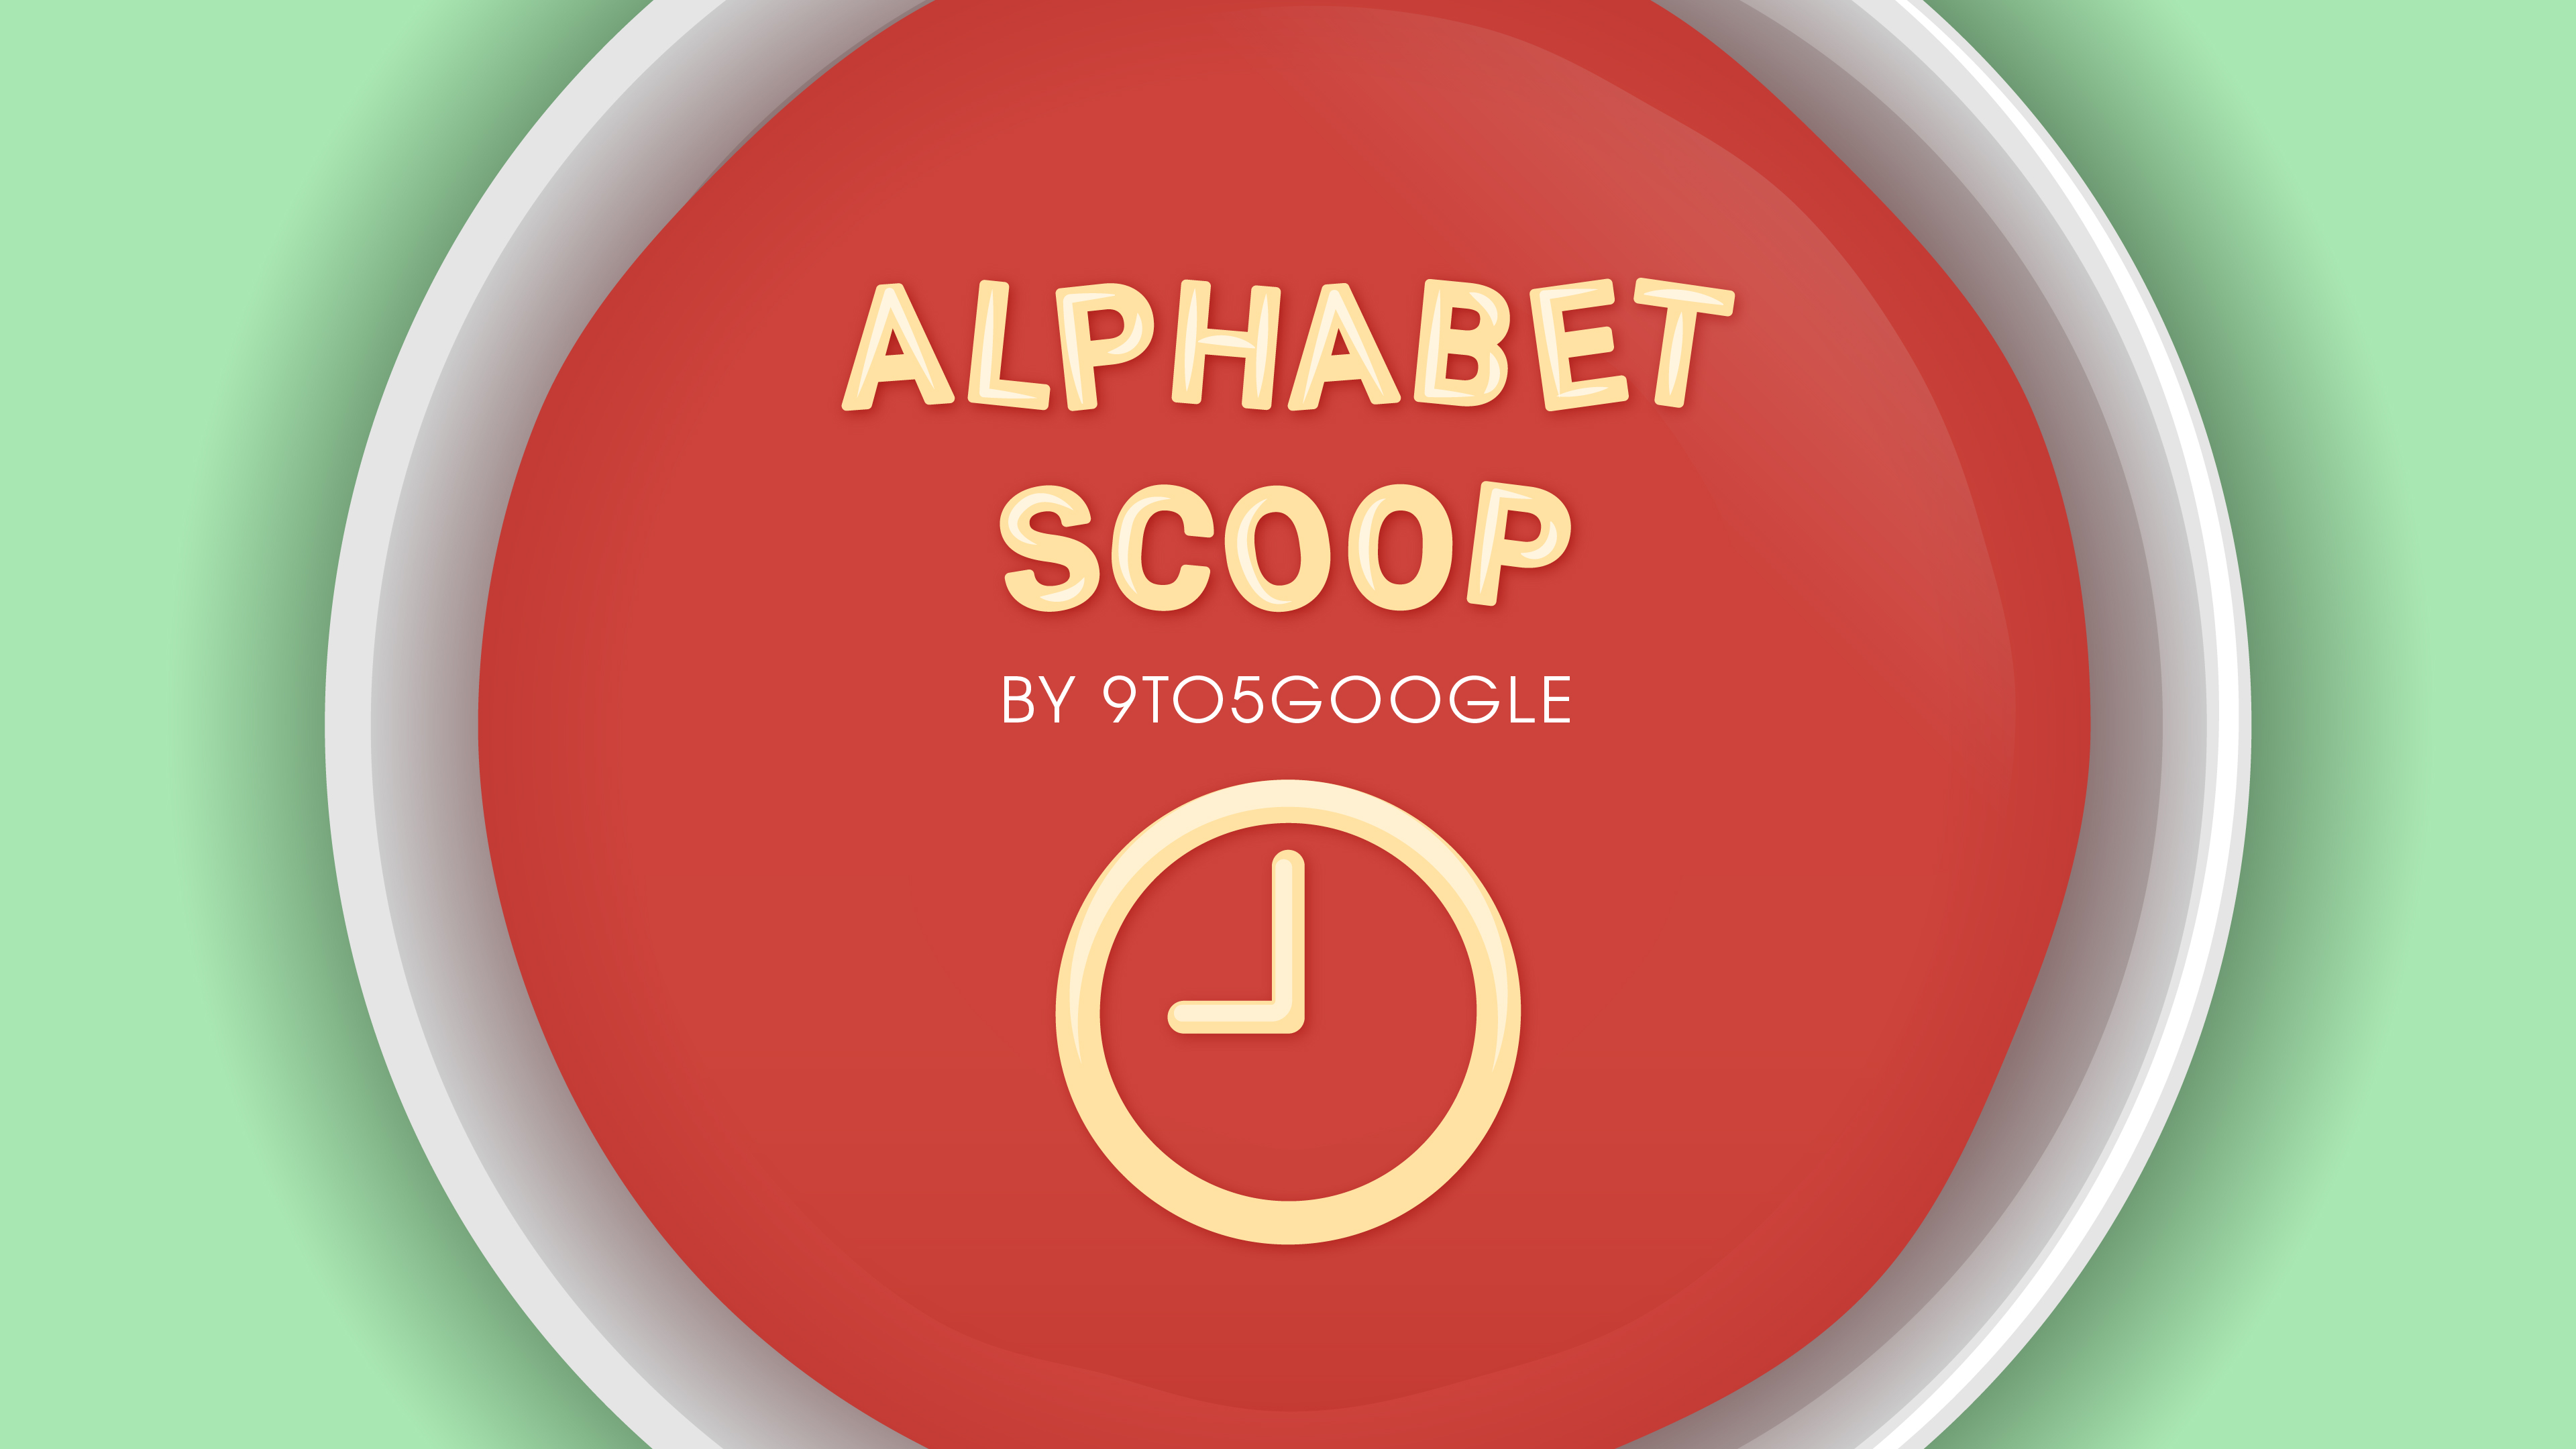 Alphabet Scoop 16 9 By 9to5Google jpg?quality=82&strip=all.'